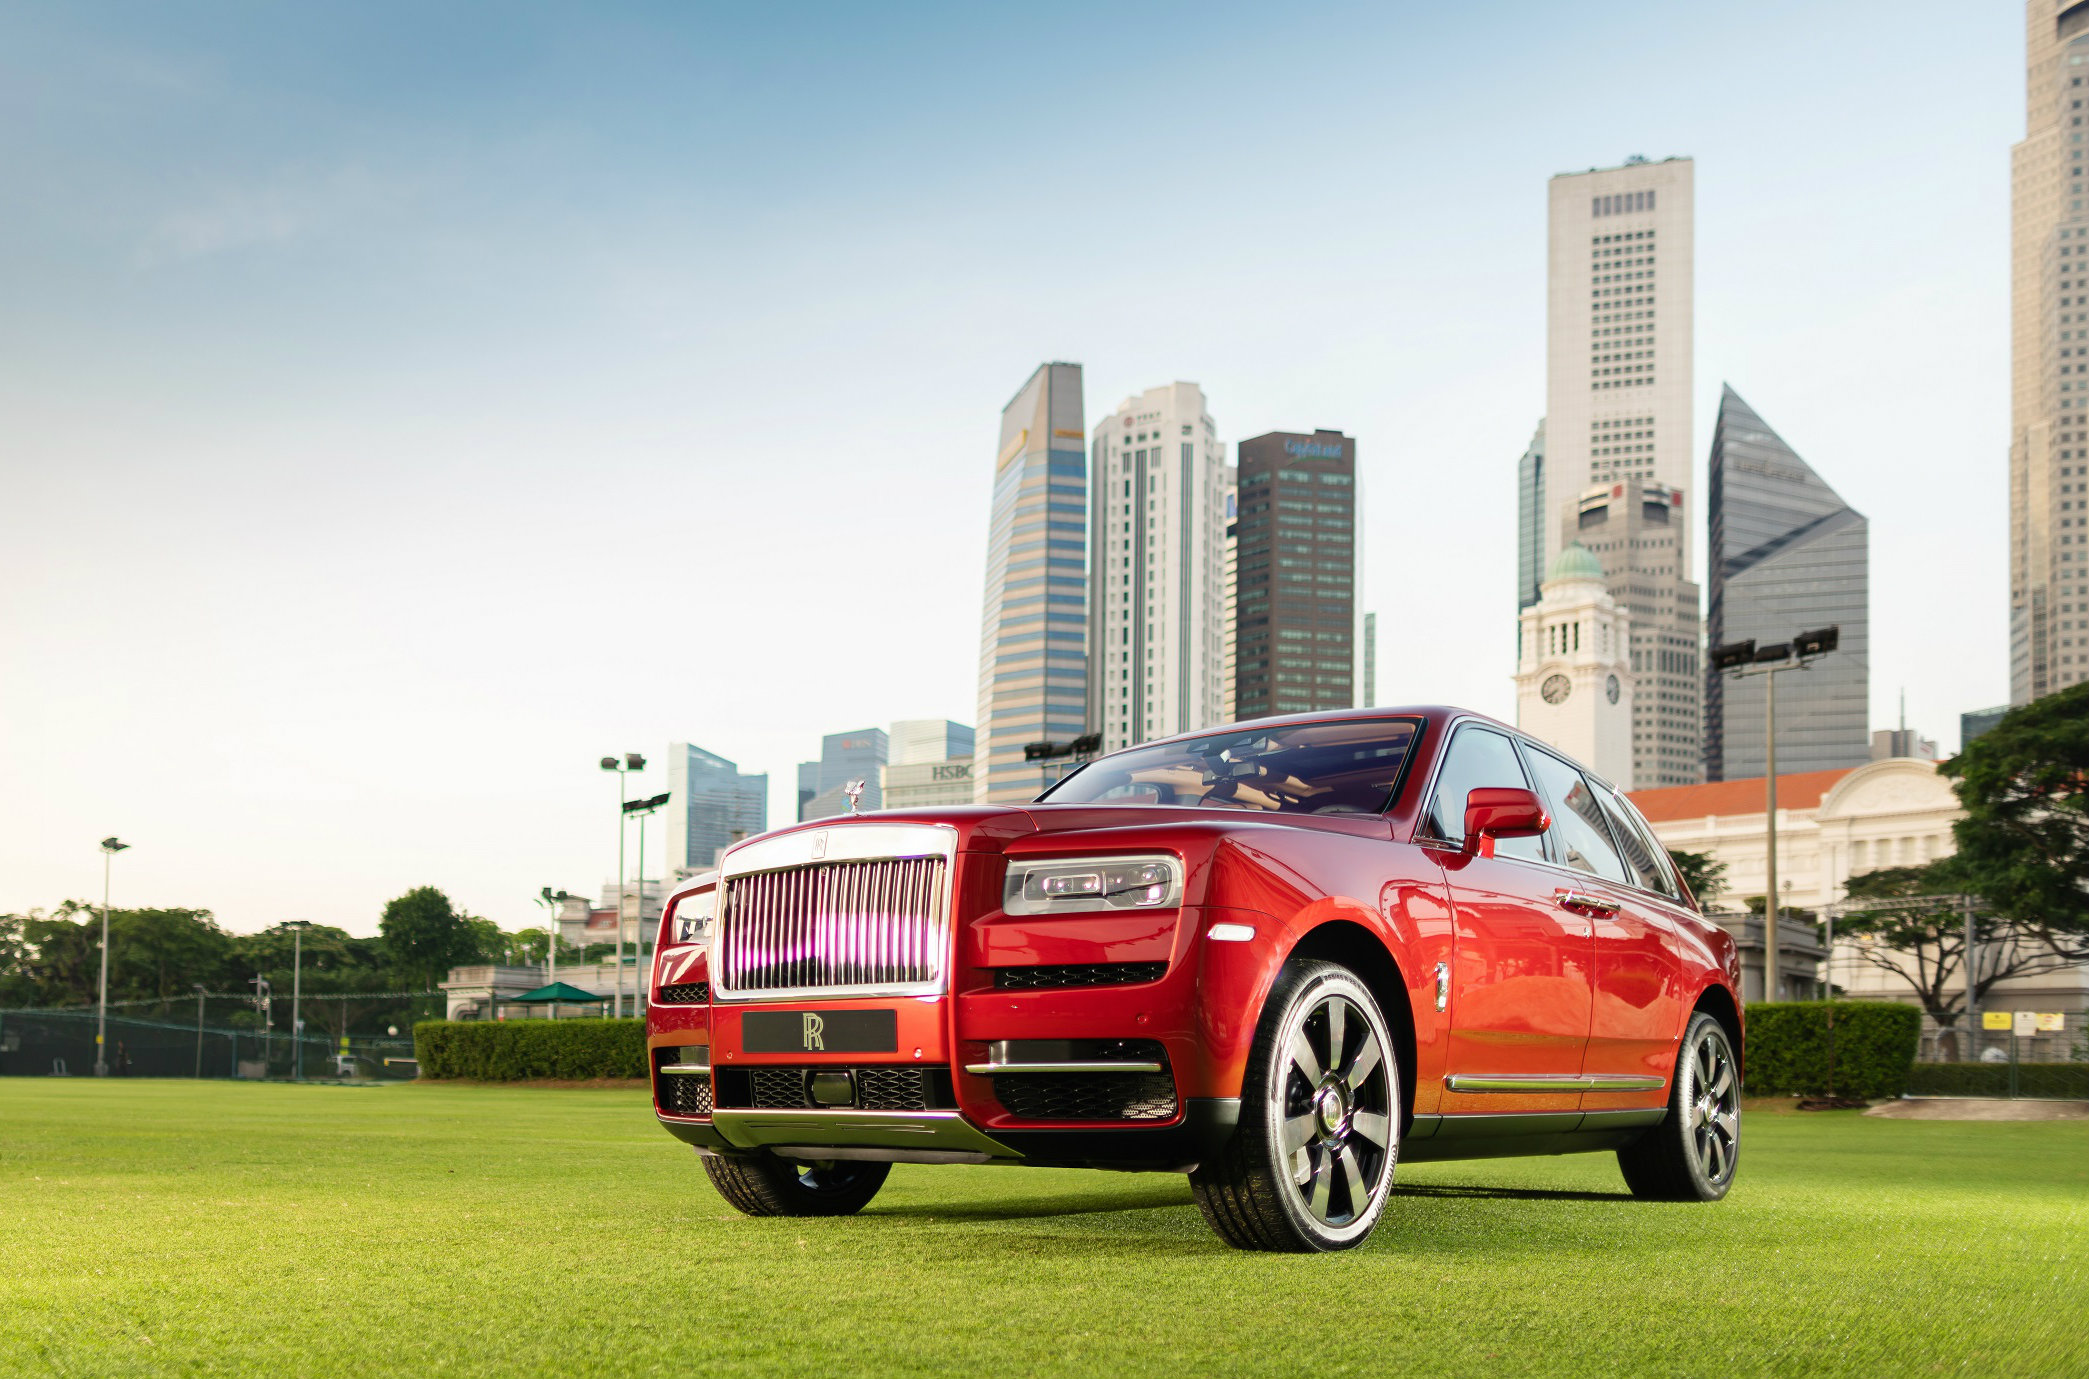 The highly anticipated $1.26 million Rolls-Royce of super-luxury SUVs made its regional debut at the Ritz-Carlton Millenia in Marina Bay.